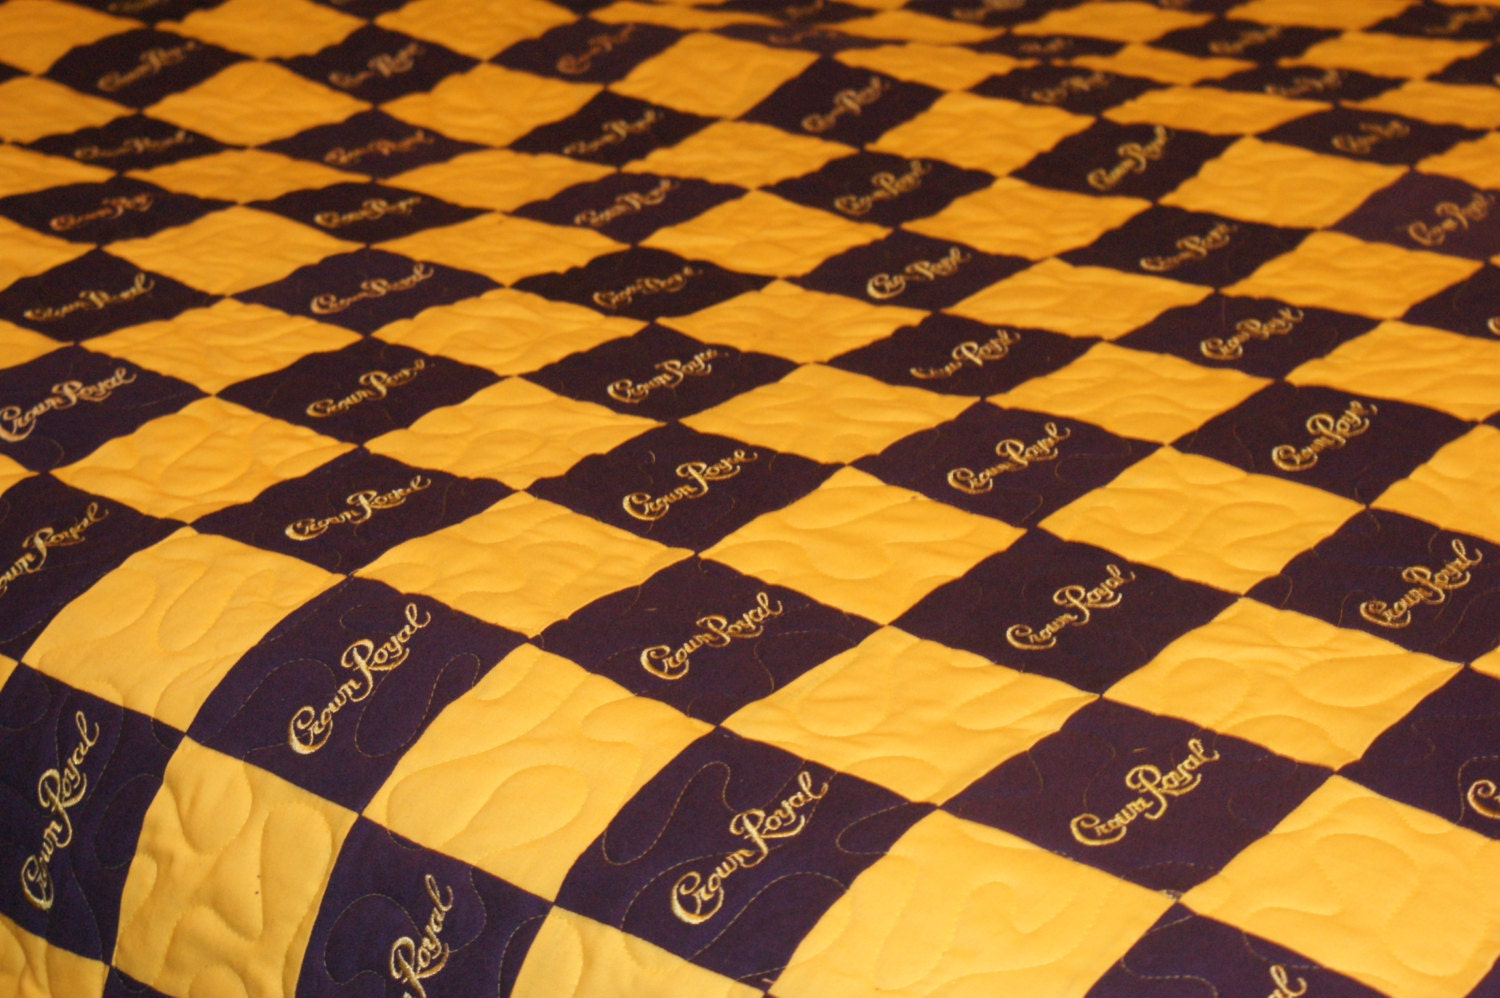 Mallory S Full Size Crown Royal Quilt Blanket